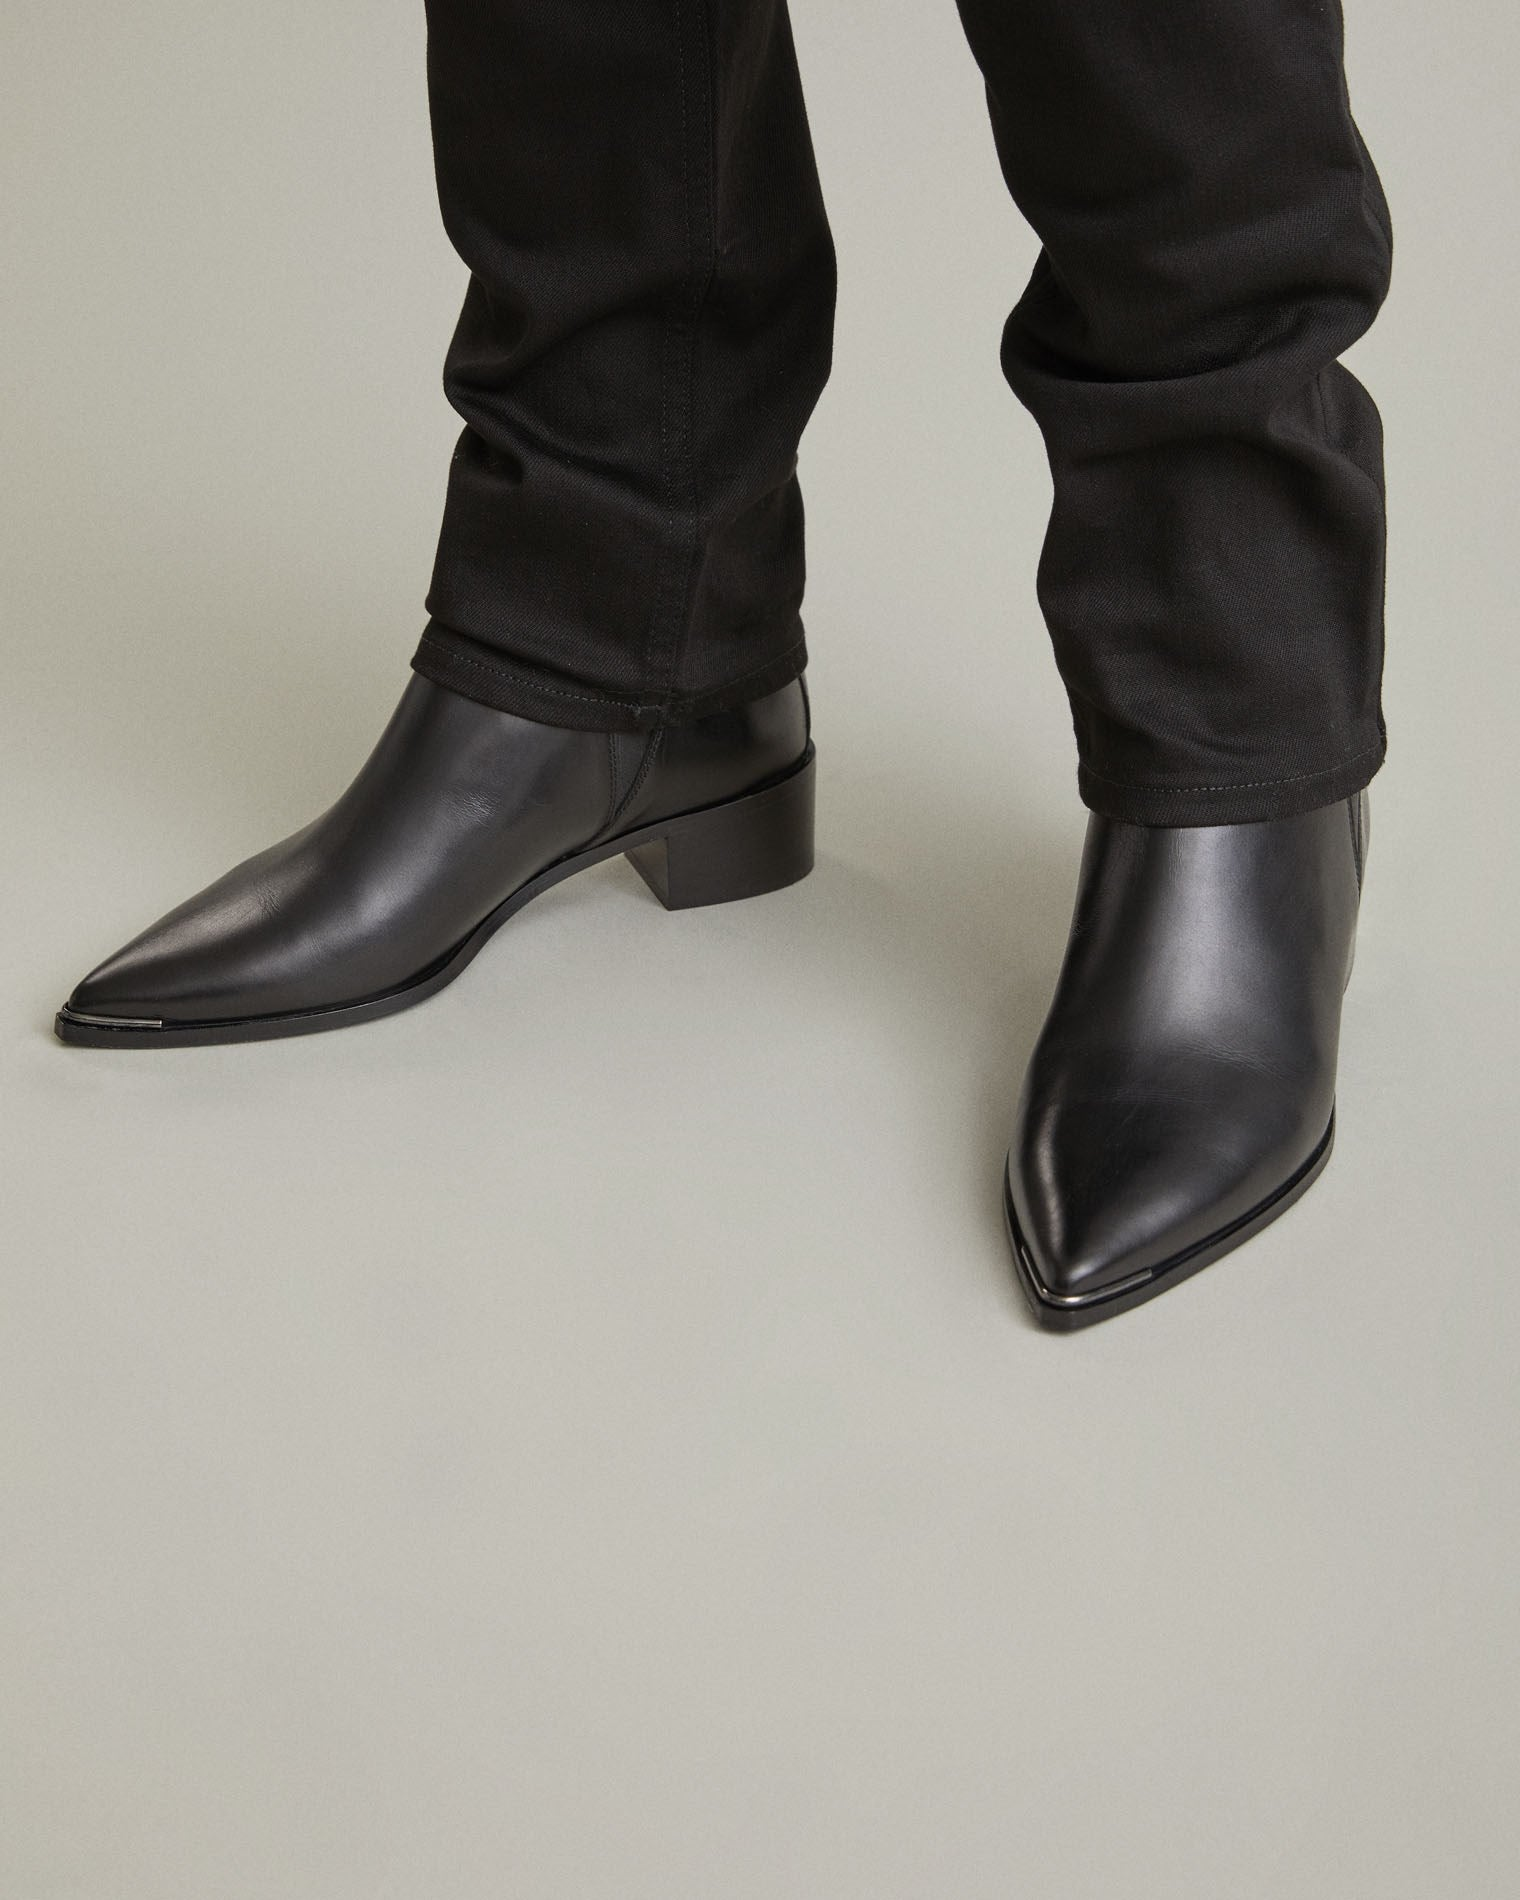 1862e87cd94c Jensen Leather Ankle Boots – WANT Apothecary US